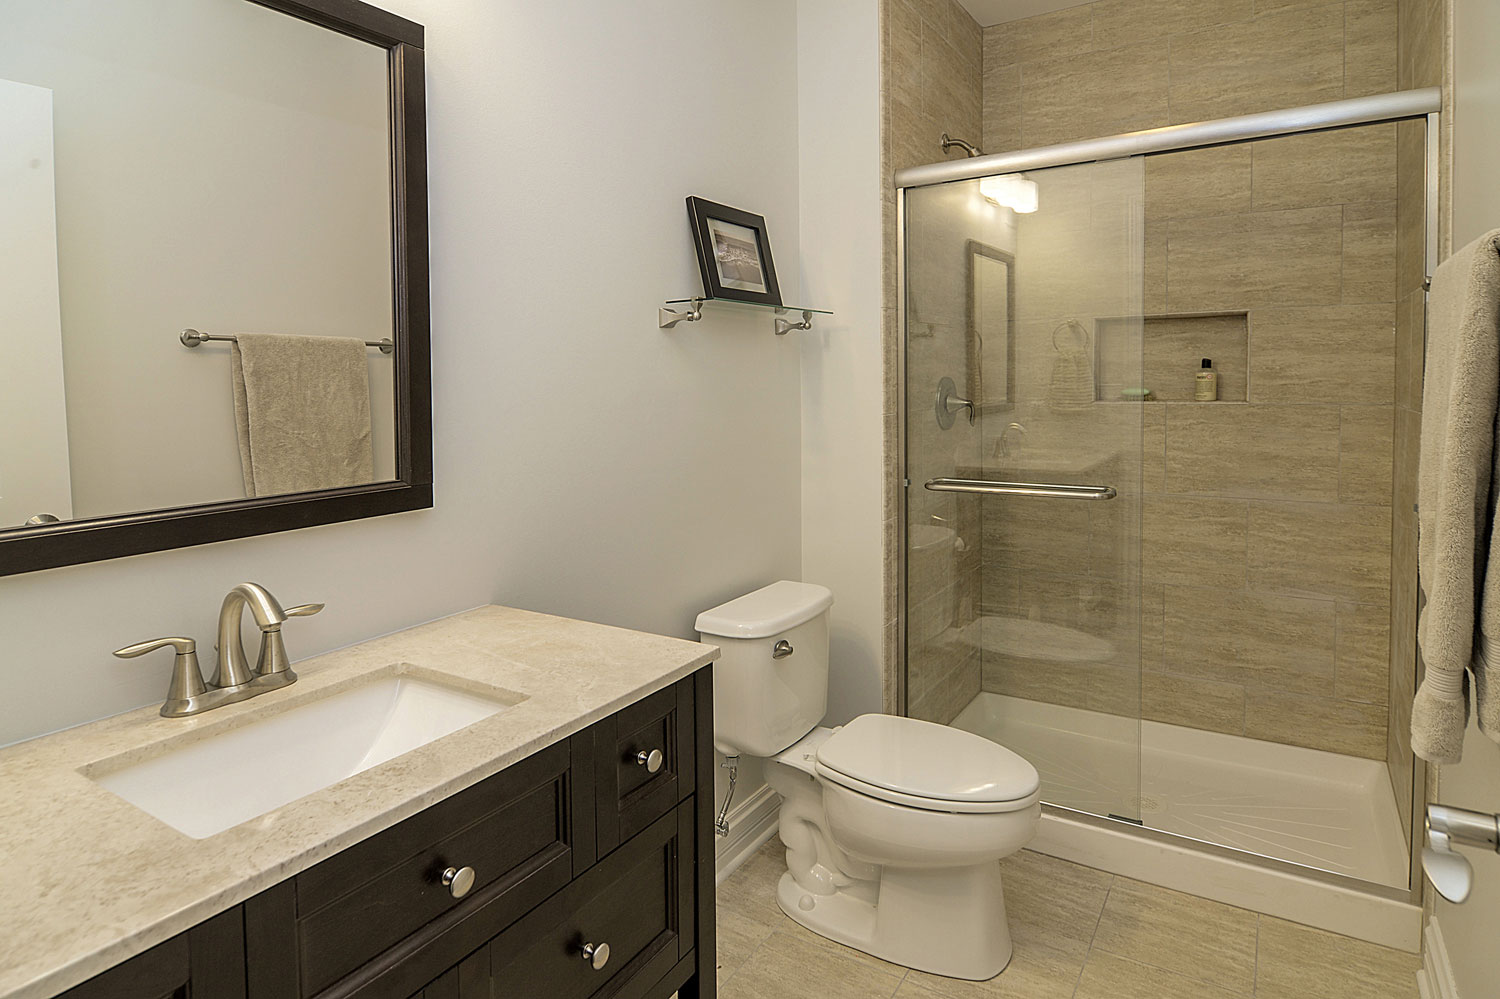 Steve emily 39 s hall bathroom remodel pictures home for Bathroom remodel ideas pictures